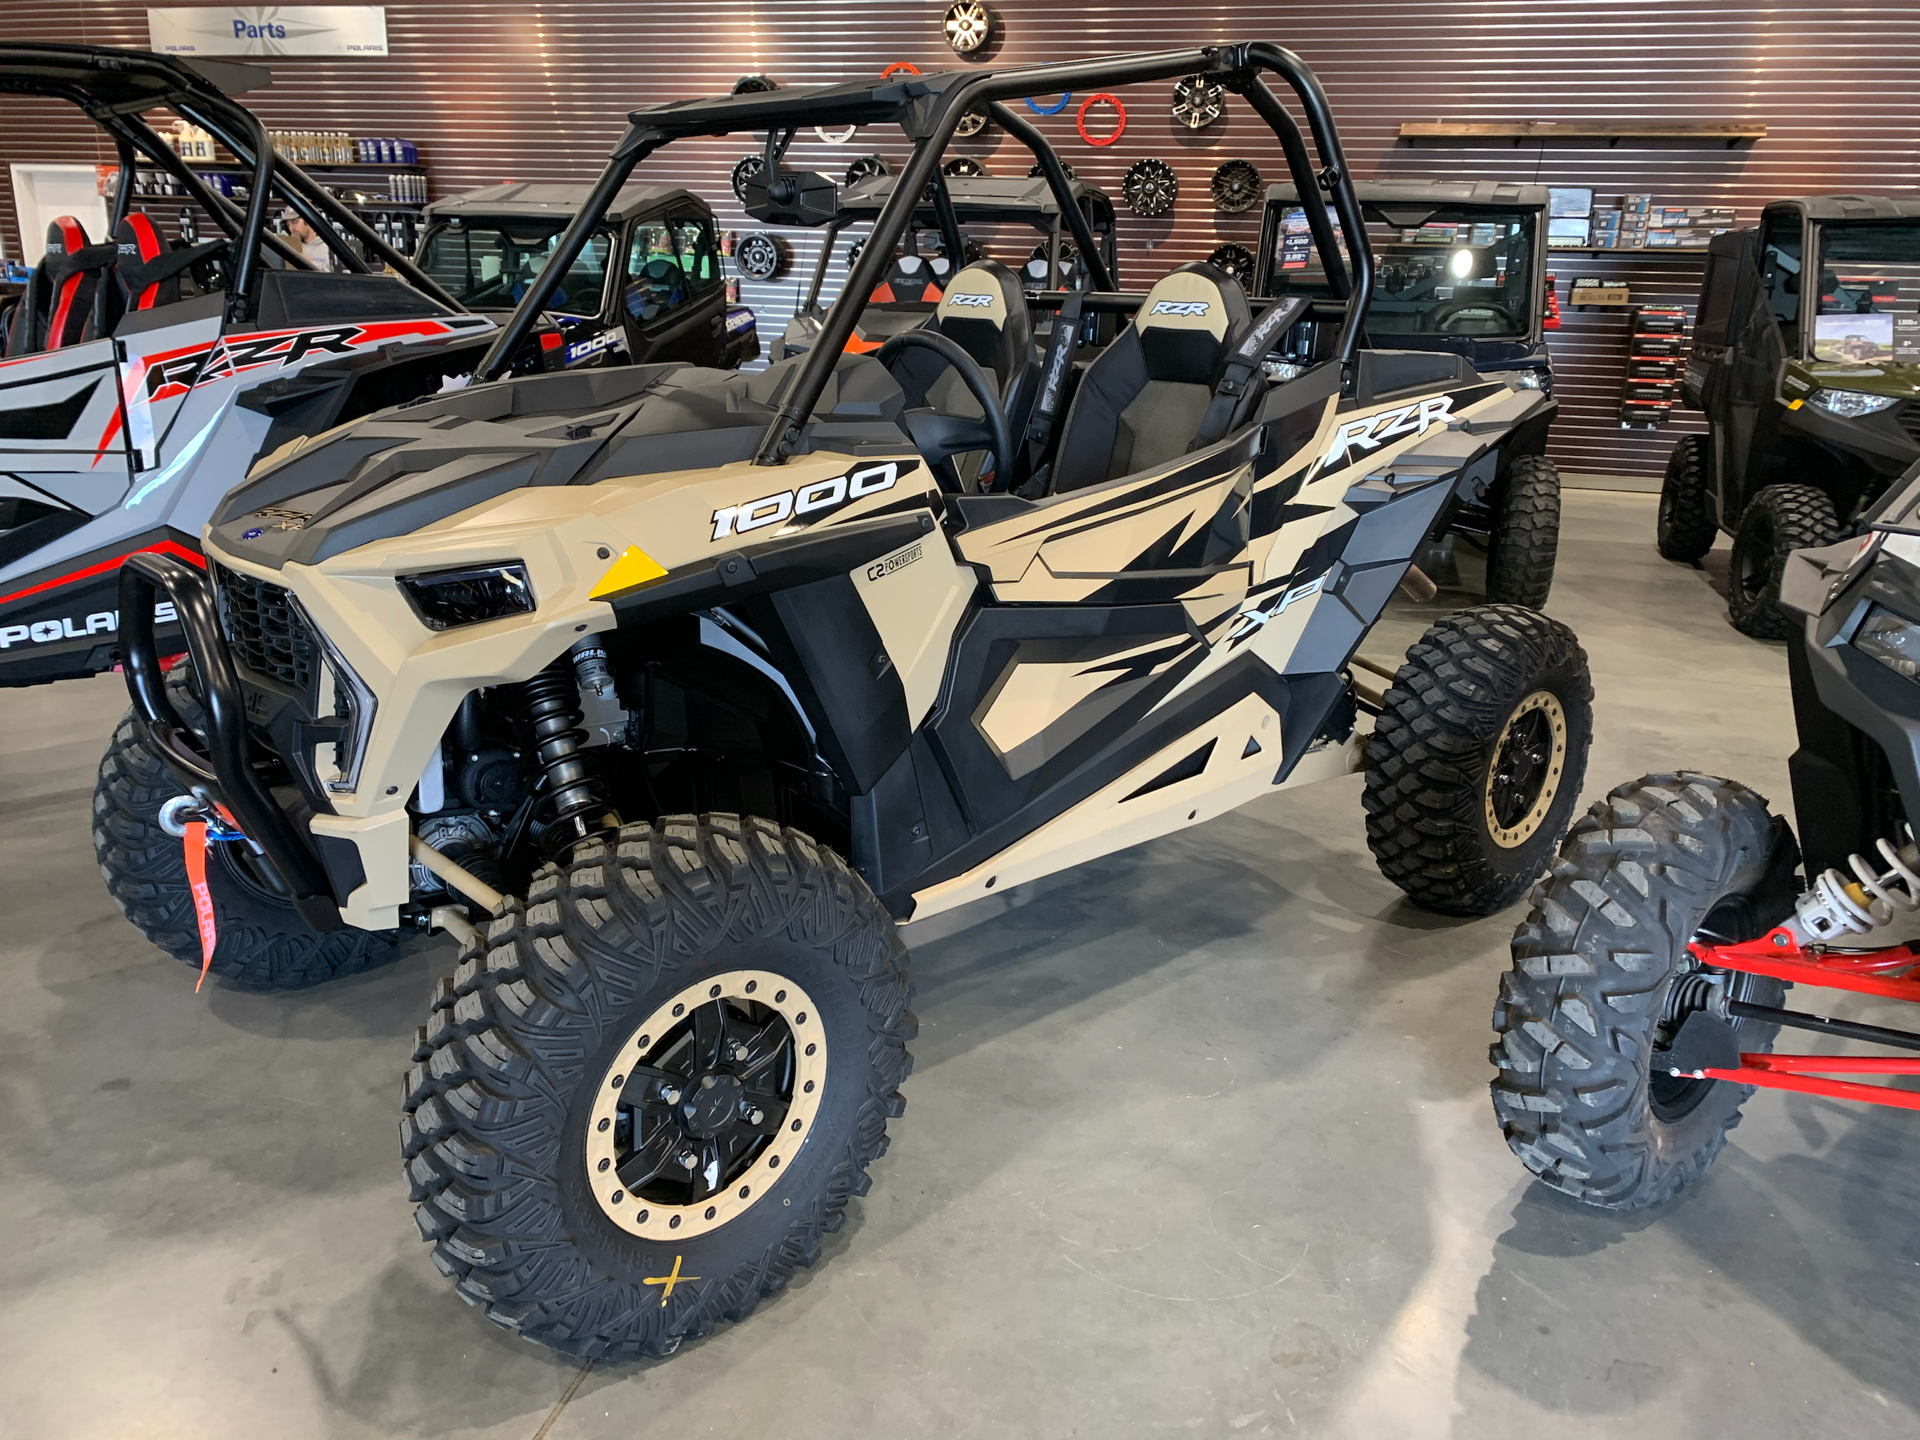 2020 Polaris RZR XP 1000 Trails & Rocks in Conway, Arkansas